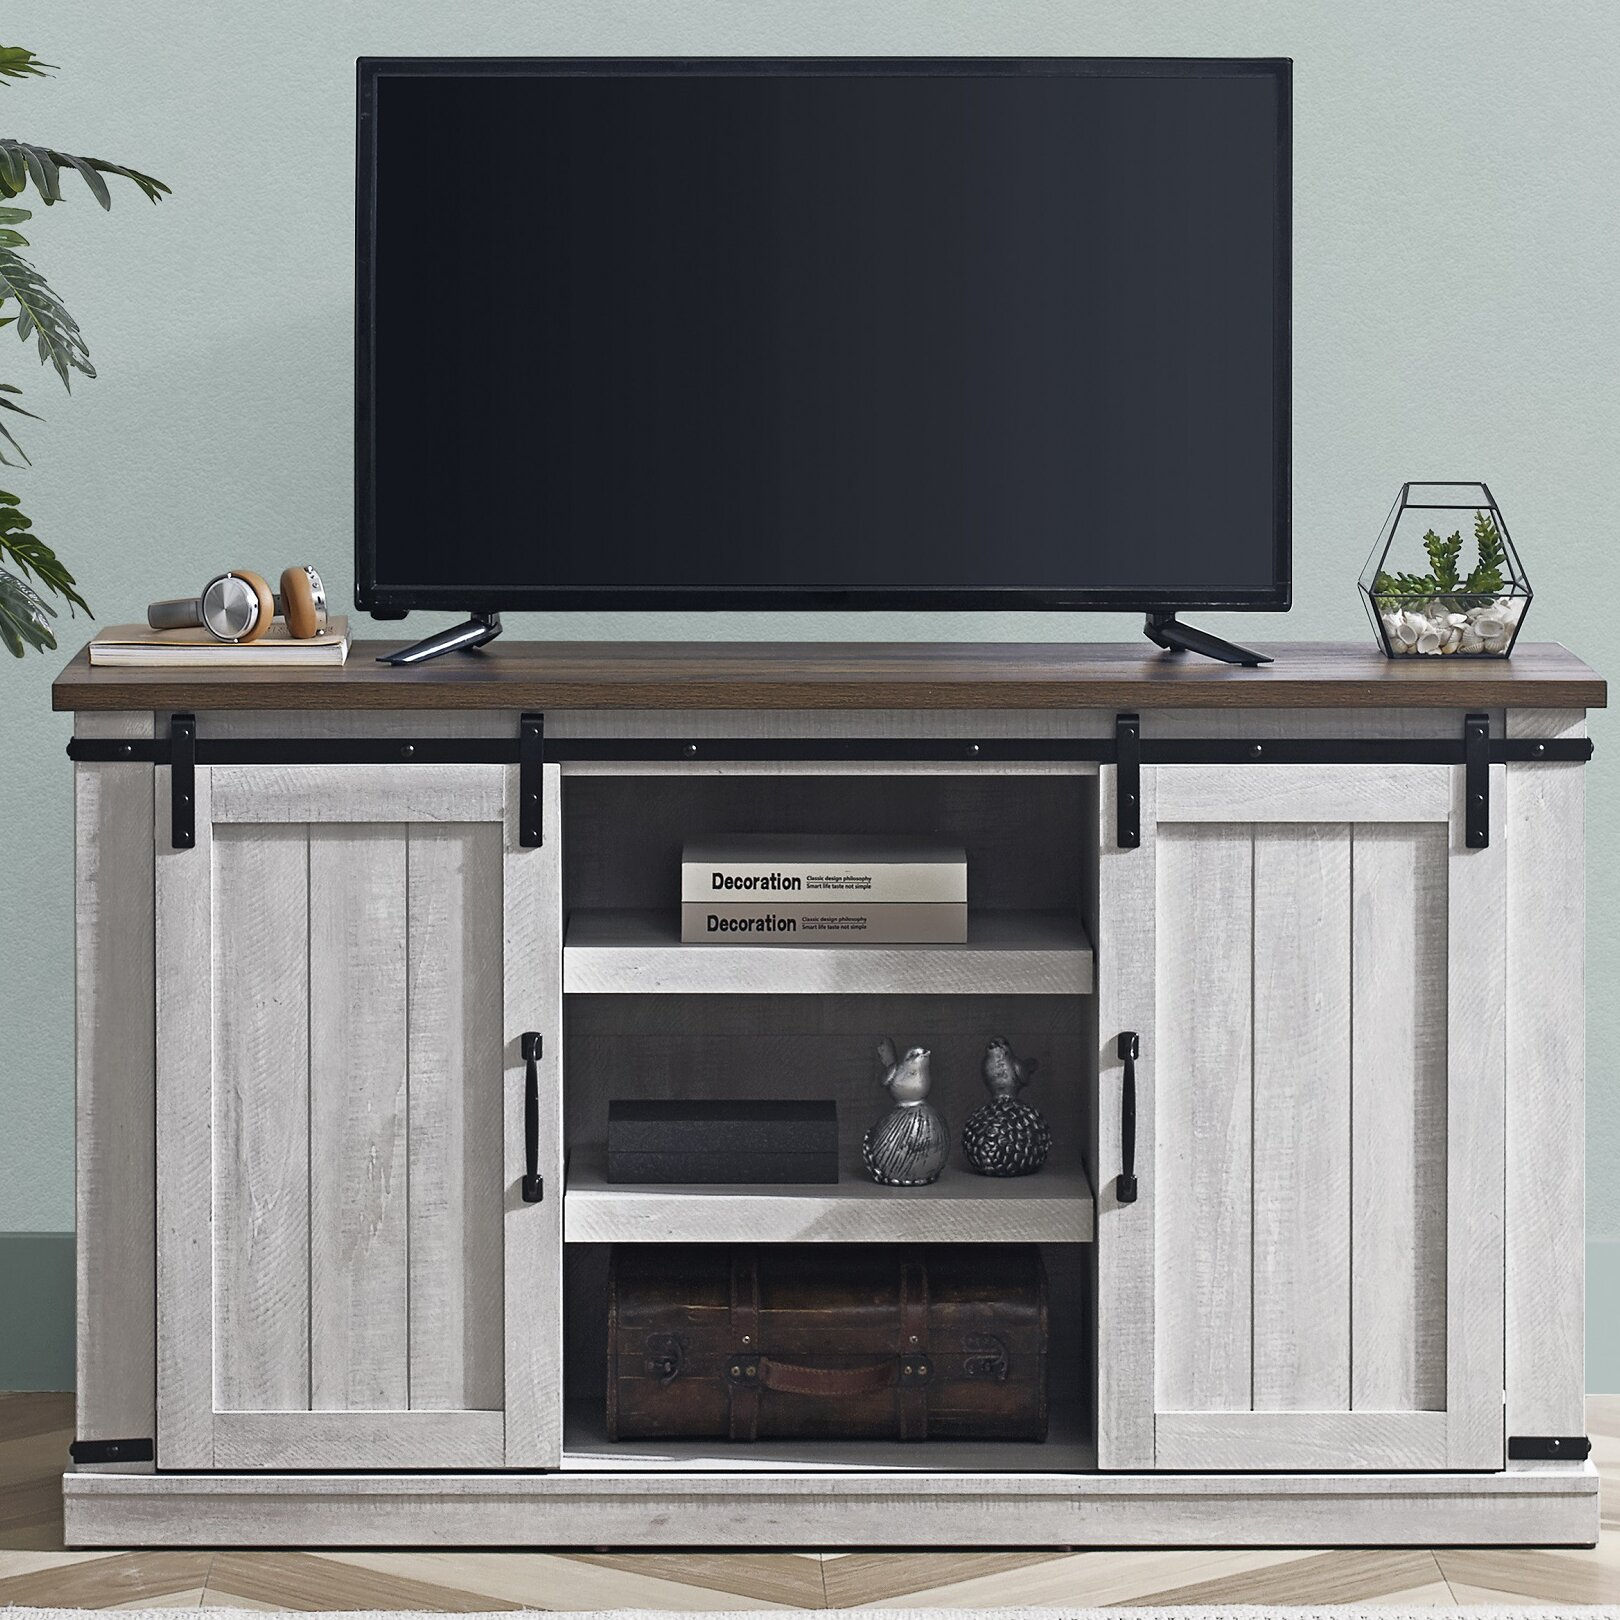 Laurel Foundry Modern Farmhouse Emanuel Tv Stand For Tvs Up To 60 Reviews